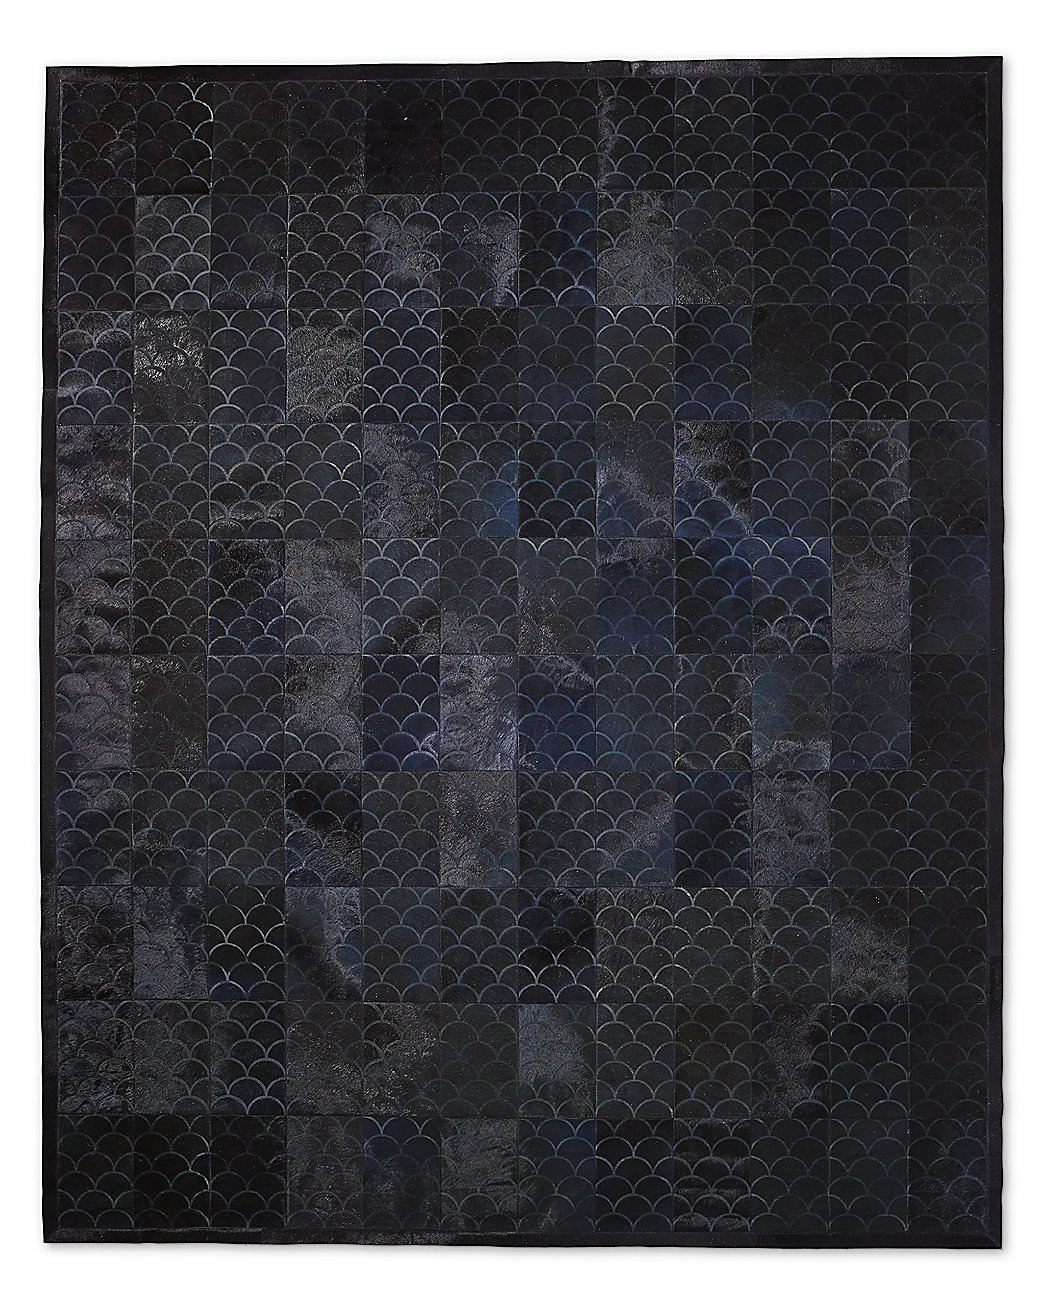 Etched Scallop Cowhide Rug - Navy